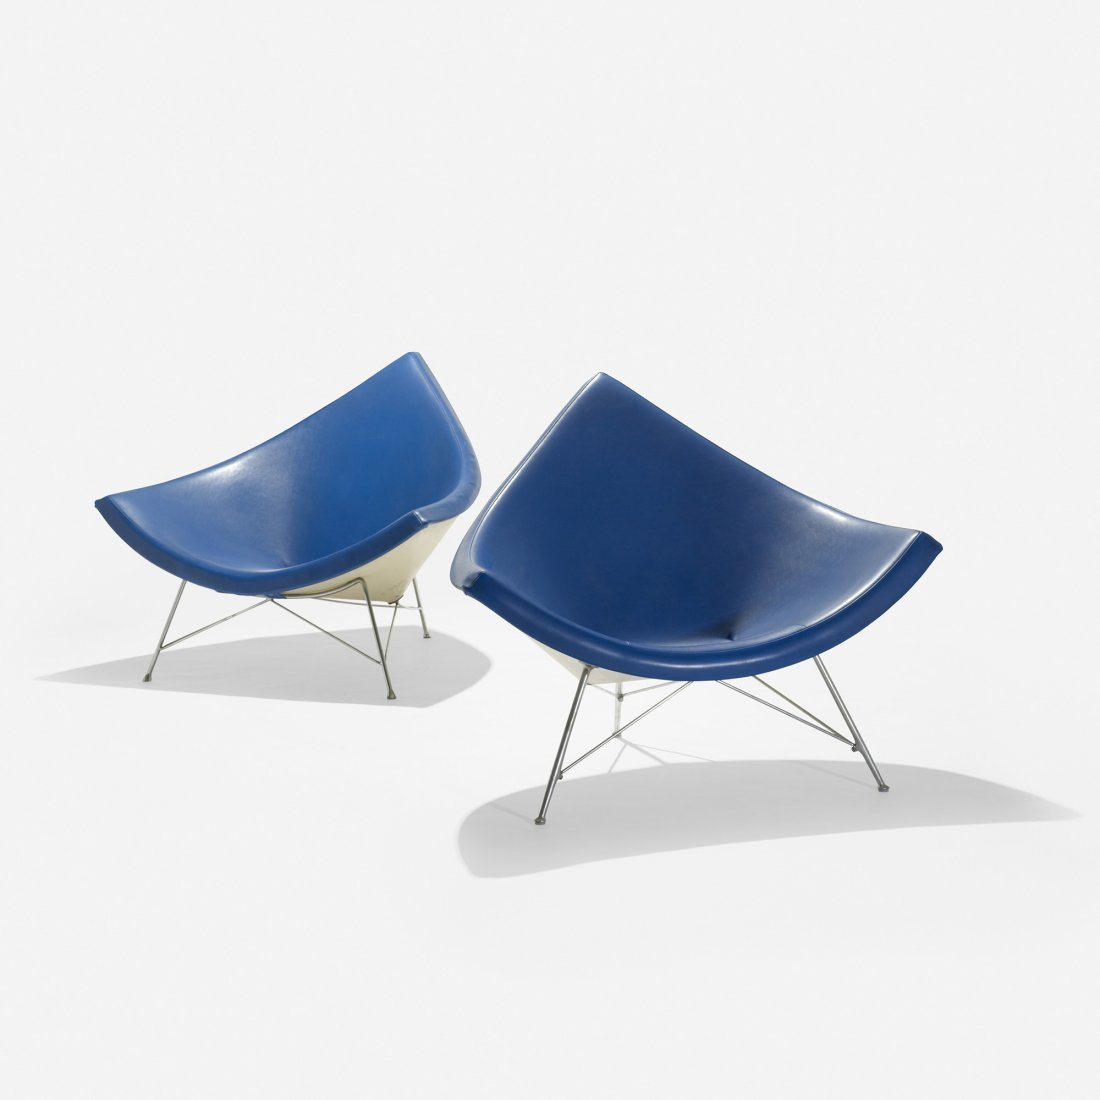 119: George Nelson & Associates Coconut chairs, pair